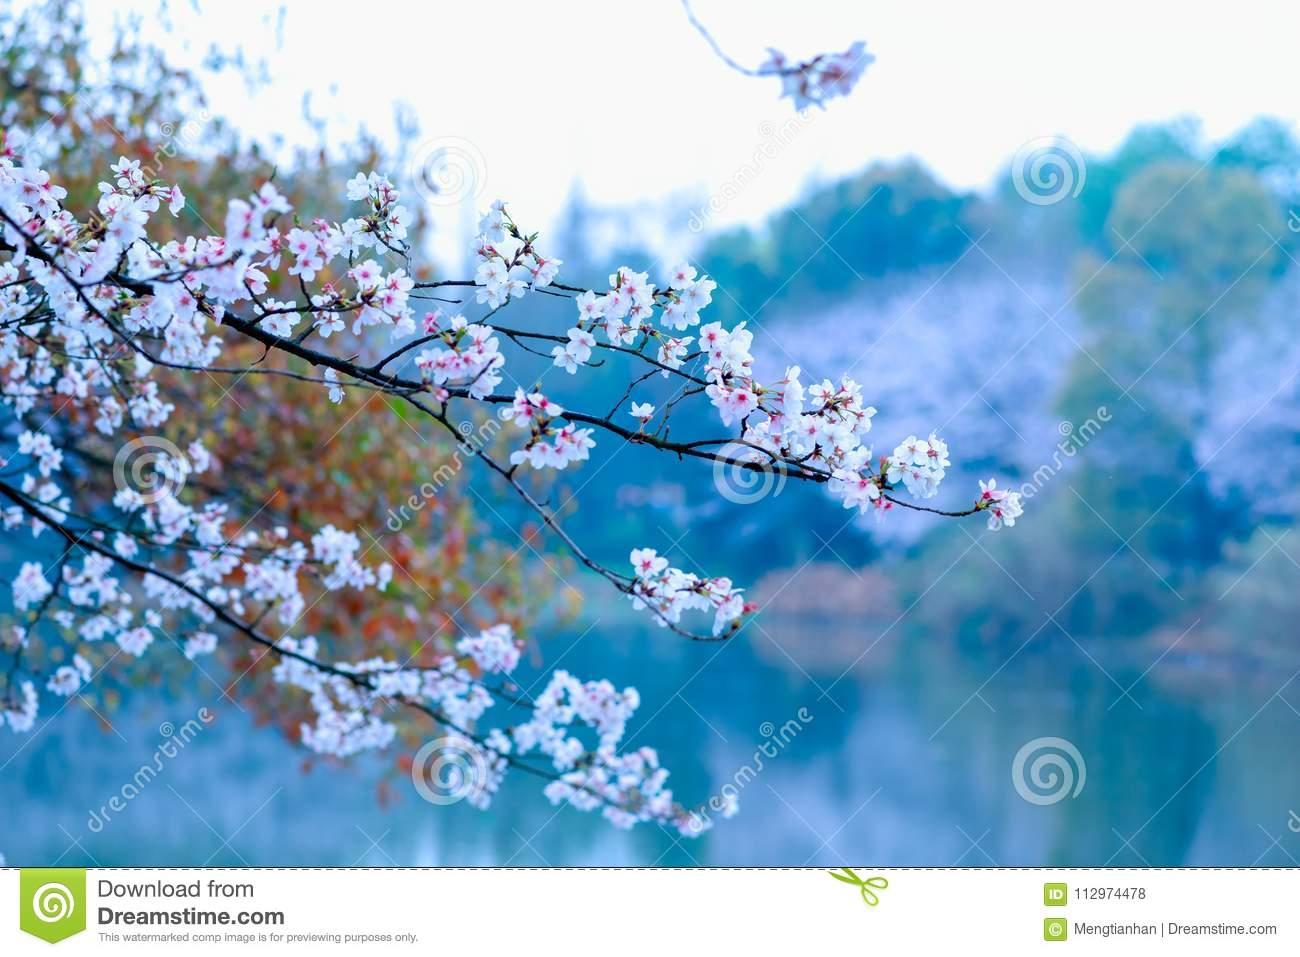 Cherry Blossoms Are Like Snow Stock Photo - Image of bright, cherry